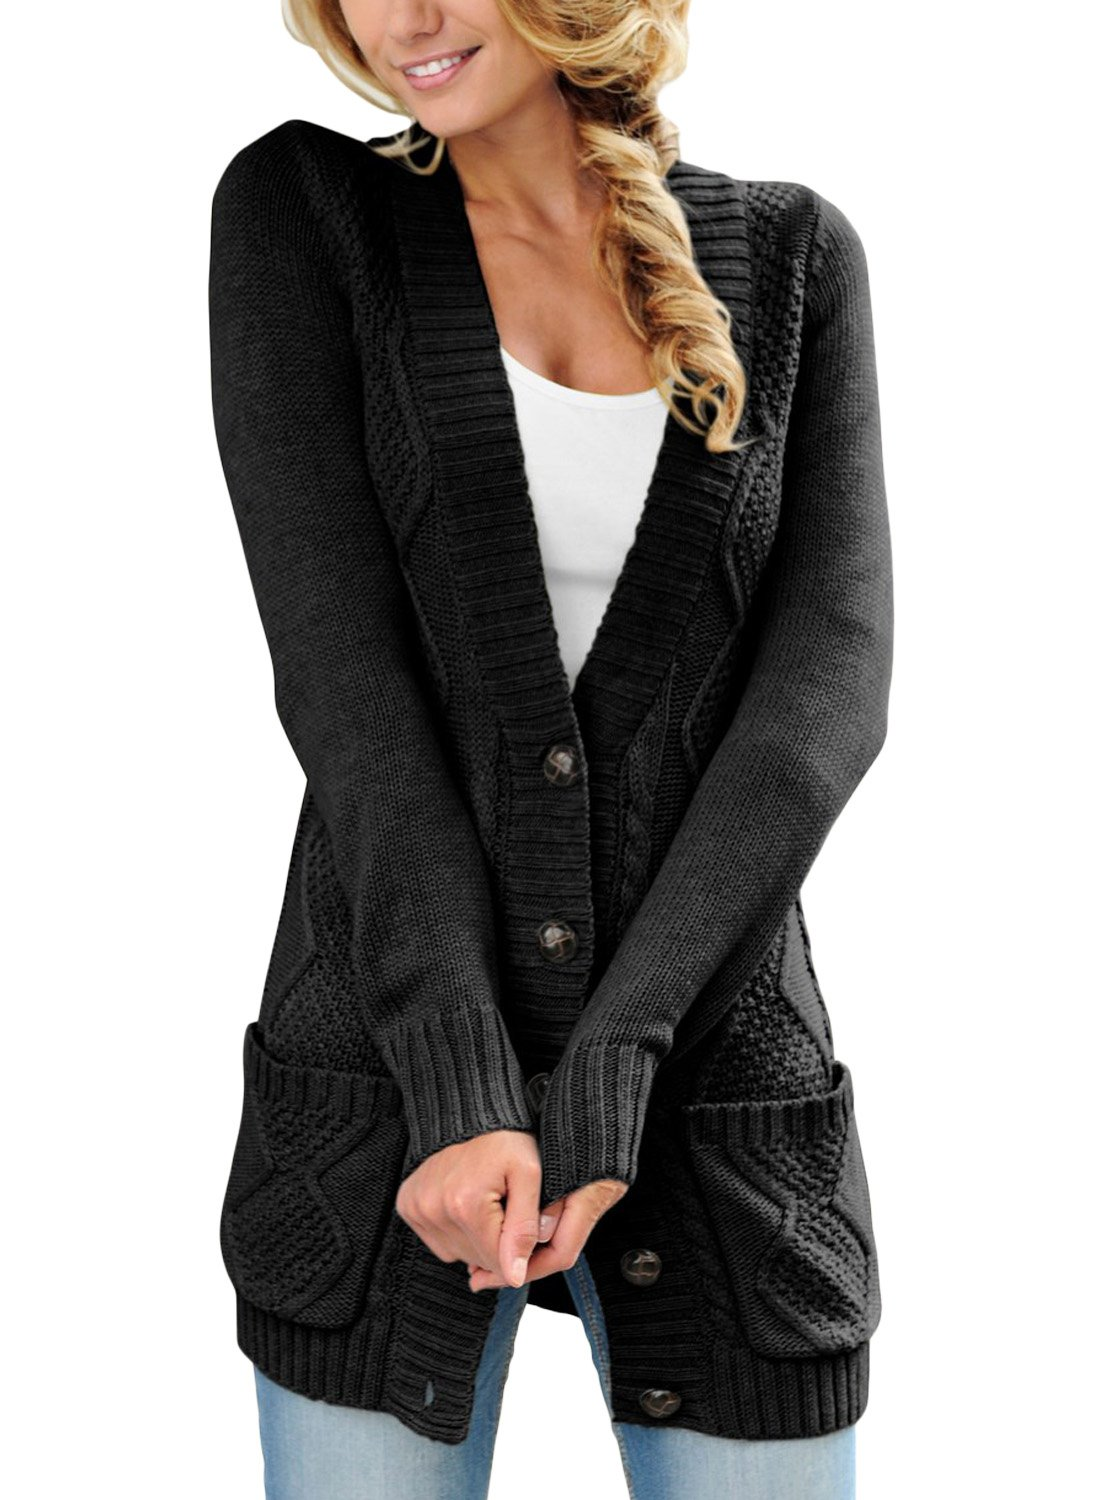 LOSRLY Women Open Front Cabel Knit Cardigan Button Down Long Sleeve Sweater Coat Outwear with Pockets-Black M 8 10